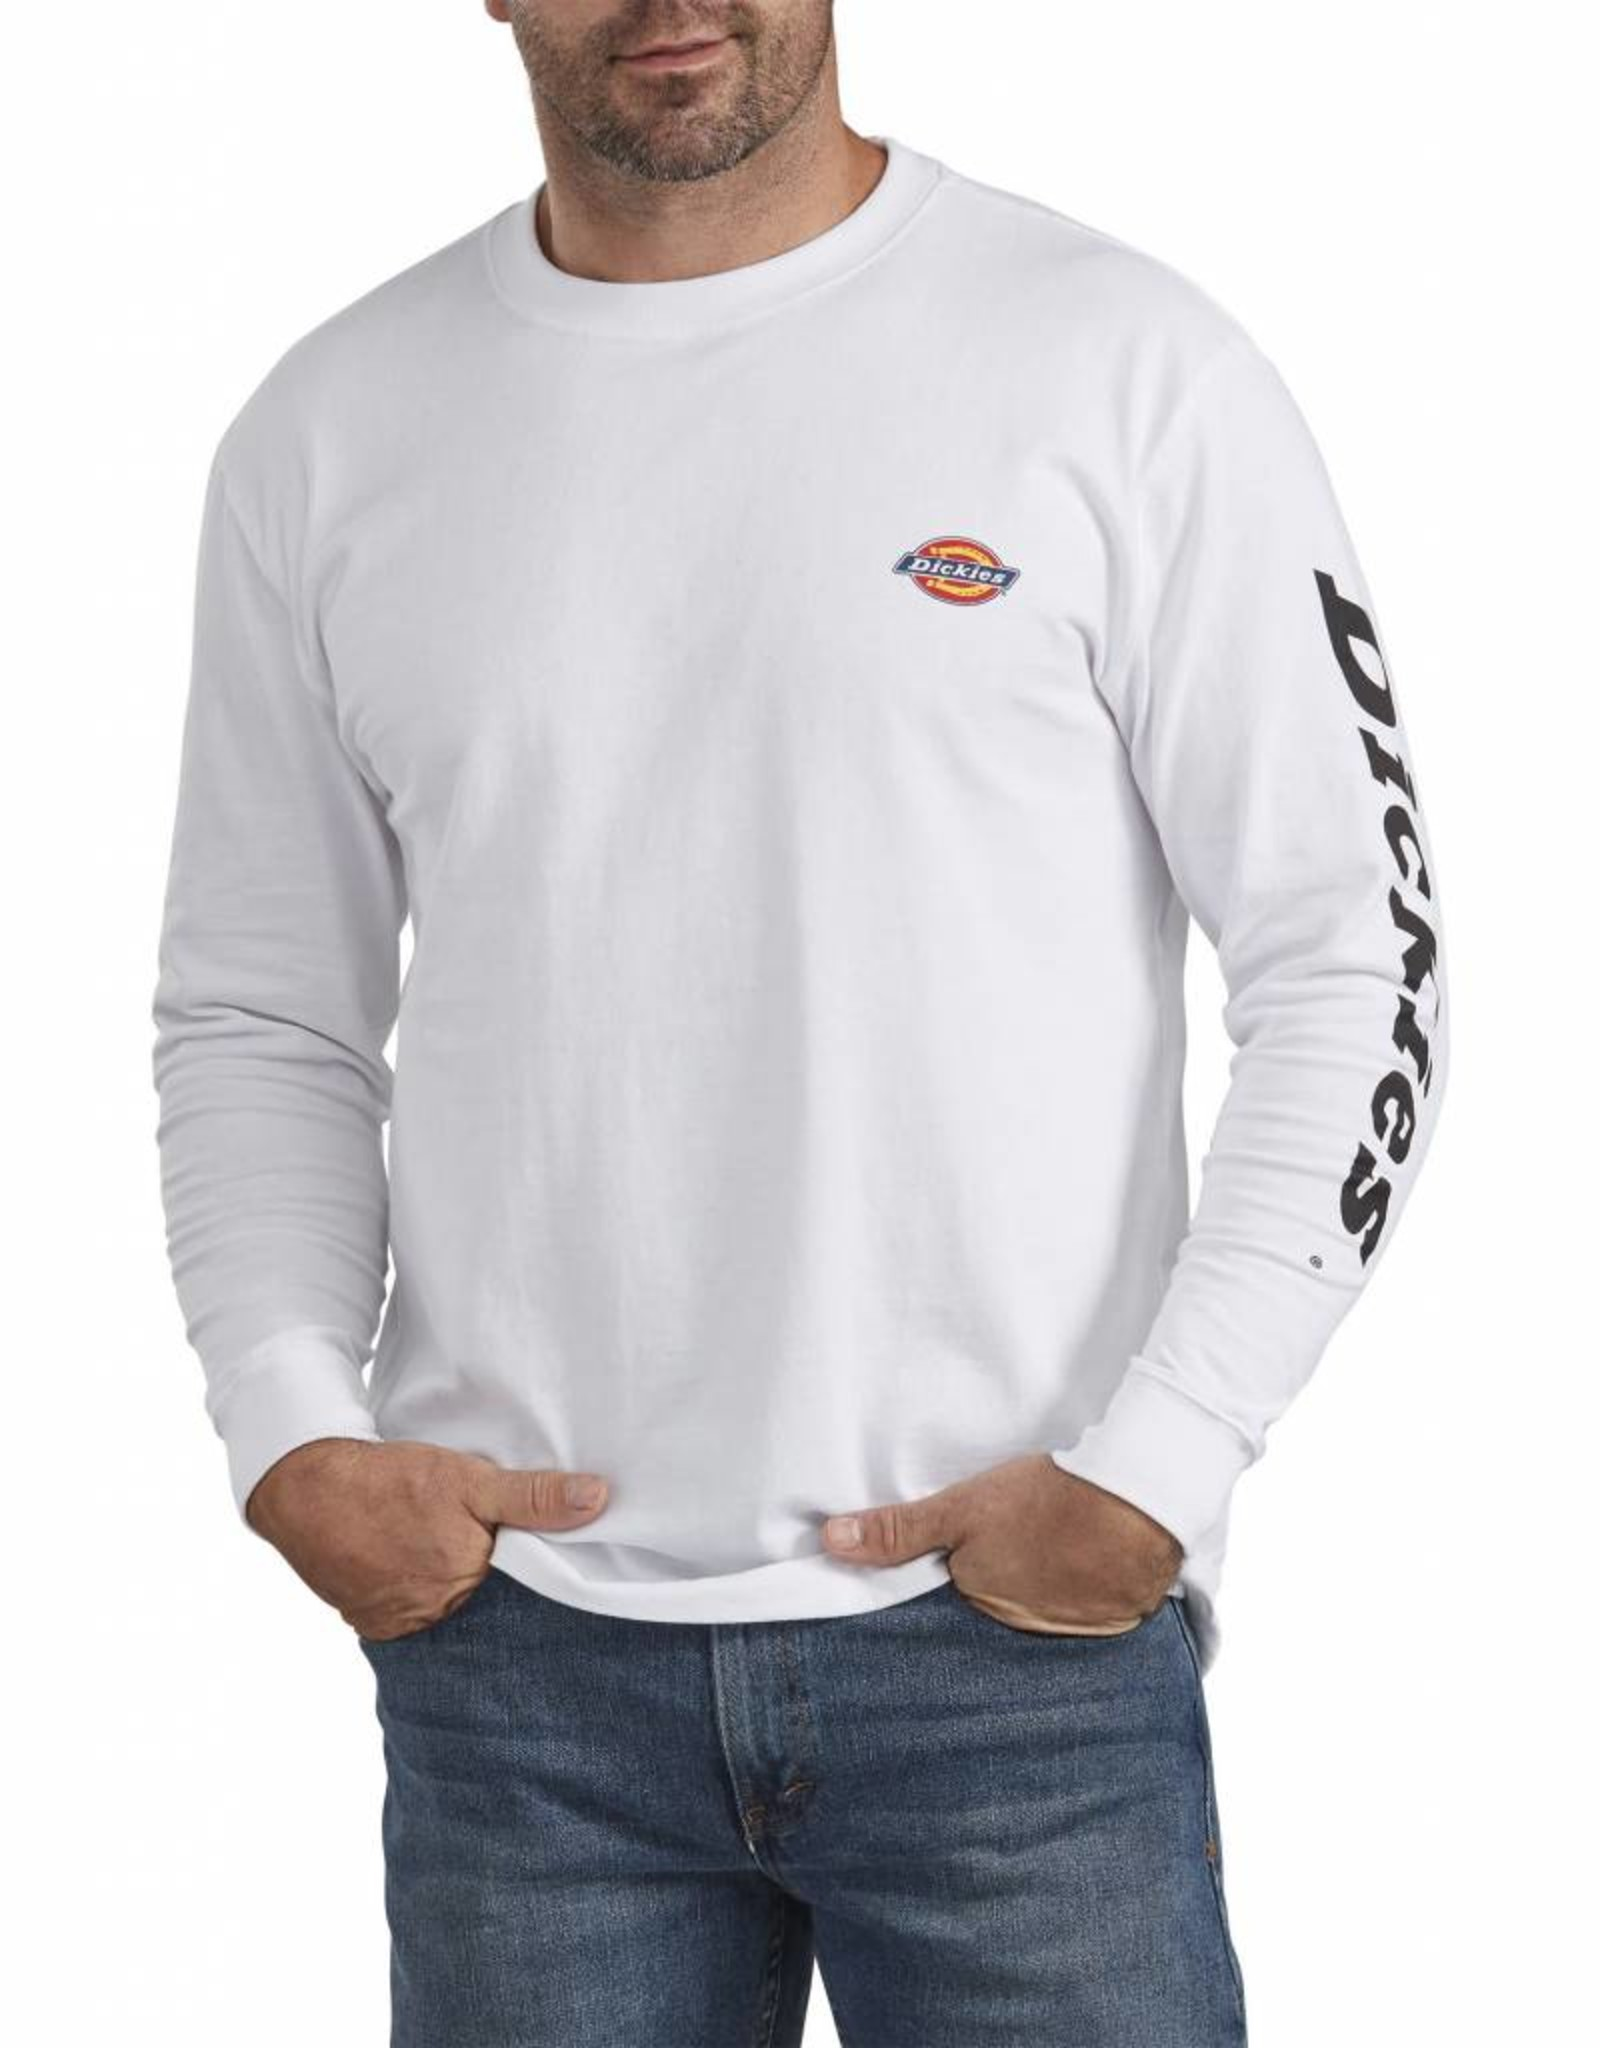 DICKIES Long Sleeve Relaxed Fit Graphic Tee (Small Logo) WL469